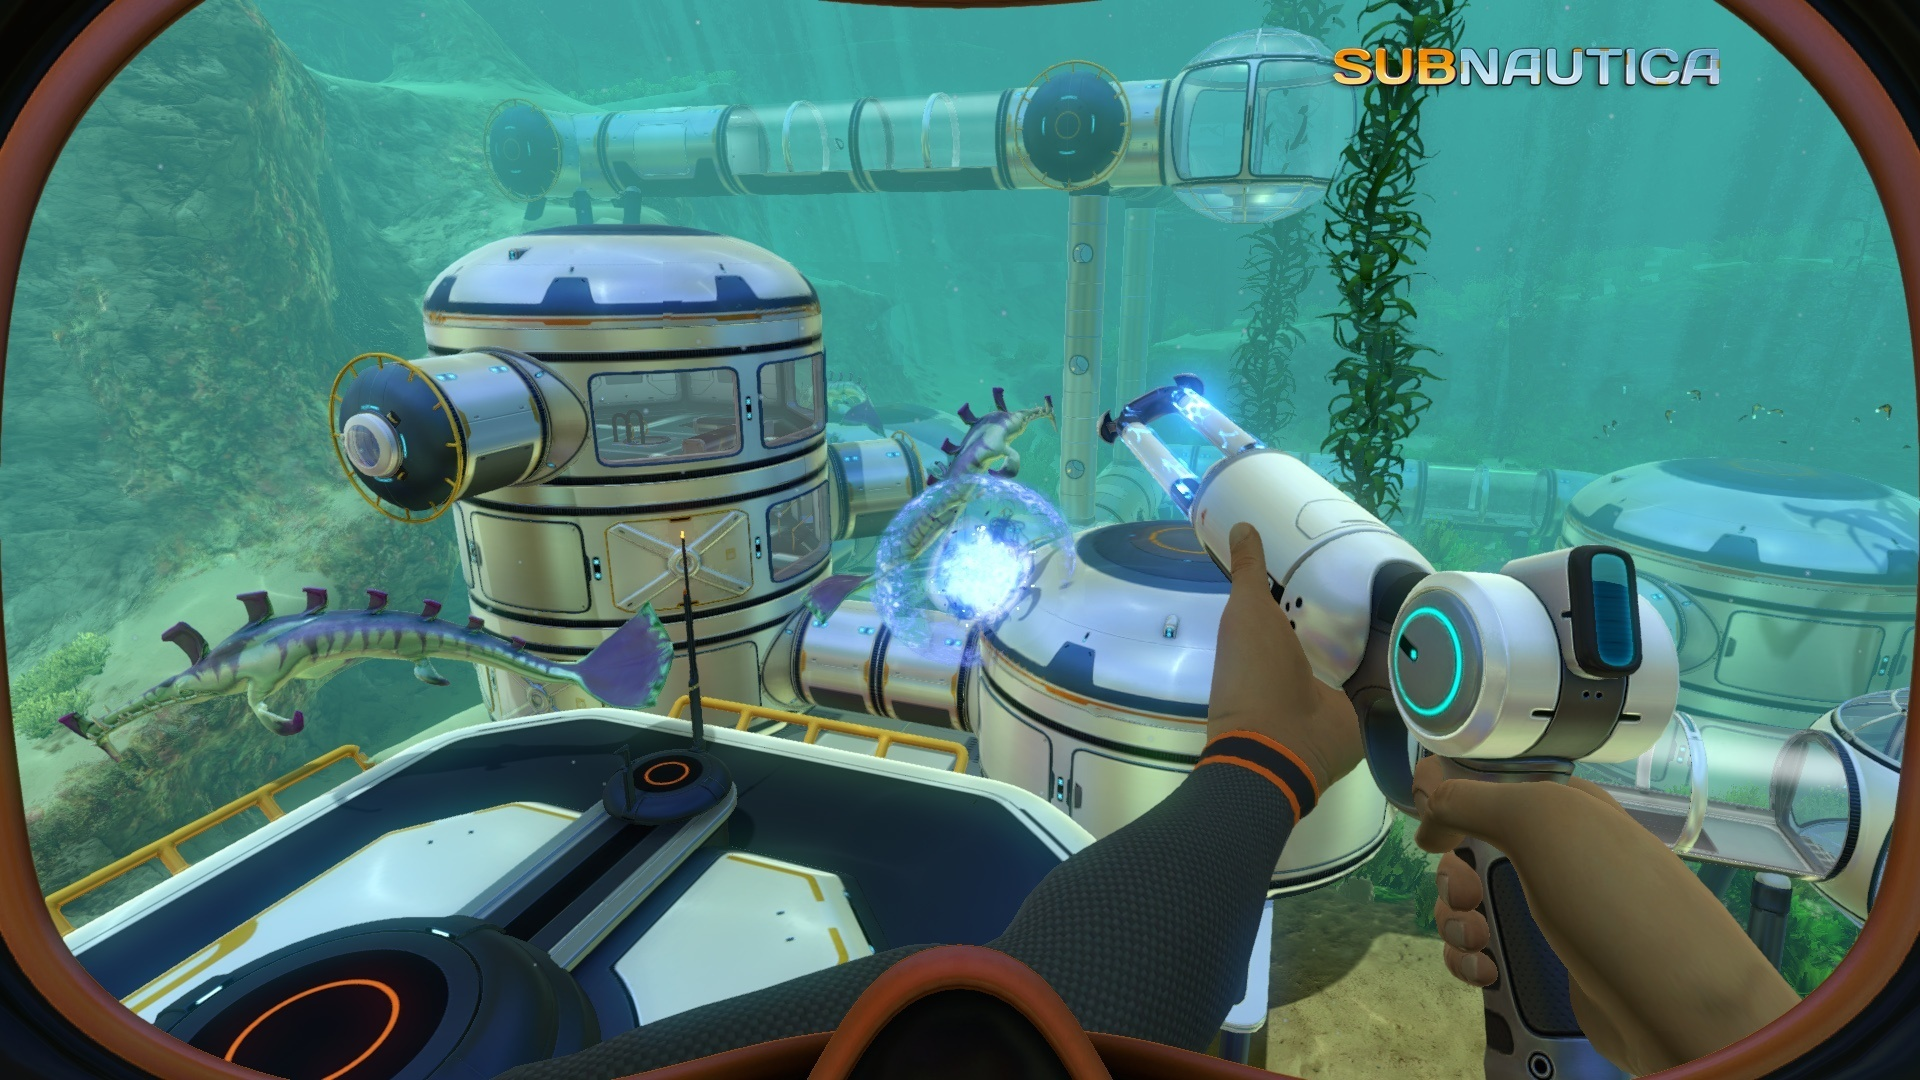 Subnautica gets a (blurry) graphics overhaul in the Eye Candy update